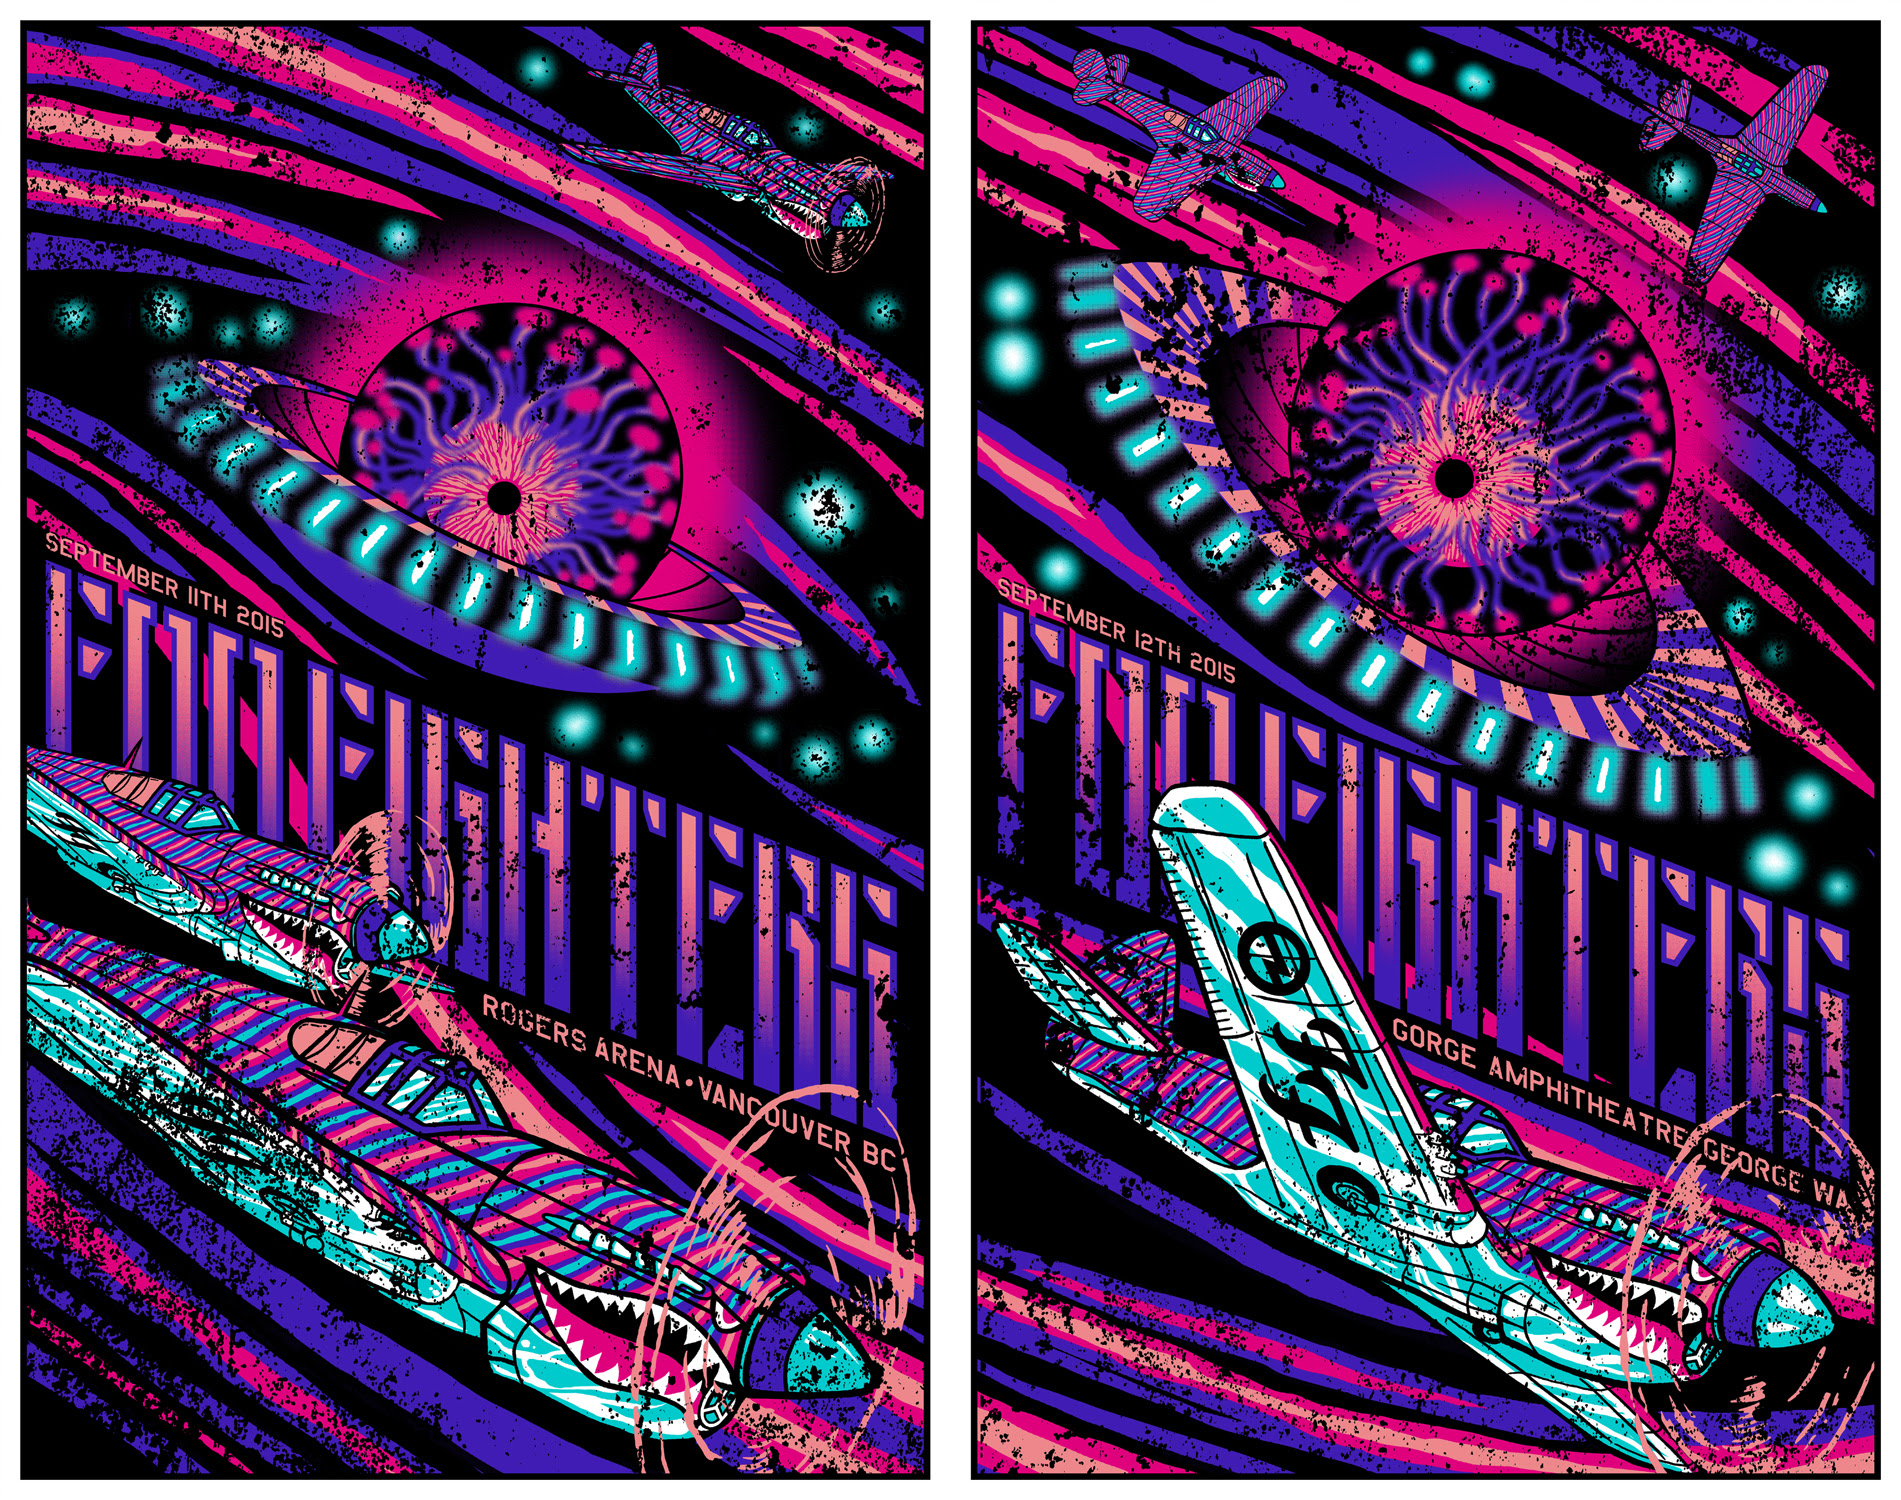 """Foo Fighter - Vancouver BC + George, WA 2015"" by Brad Klausen.  (2) 15.25"" x 24"" 6-color Screenprints.  Ed of 100 S/N.  $60 set : $35 each"